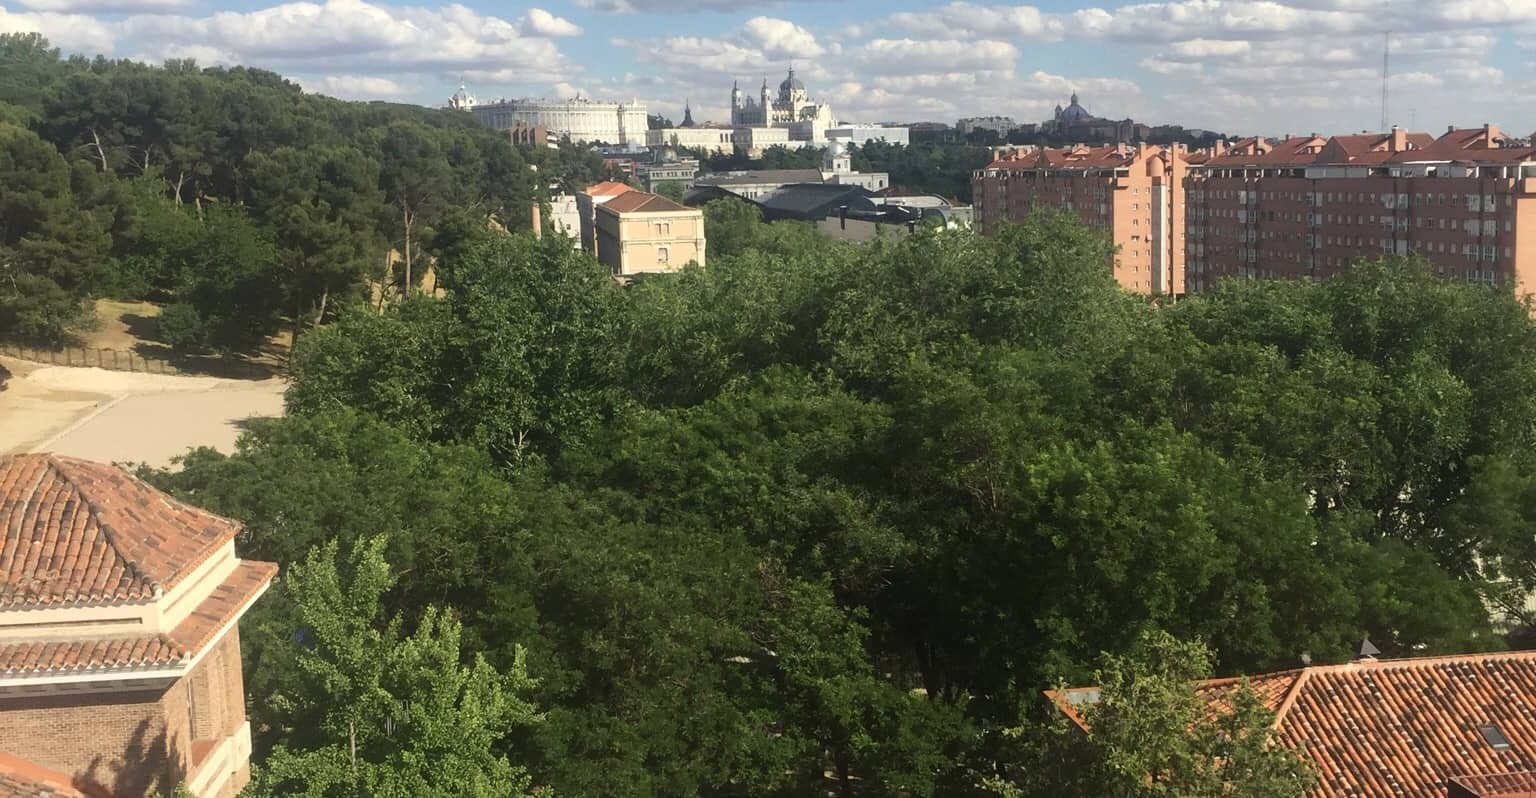 Can you see La Almudena in the distance? The Cathedral is our next door neighbor.